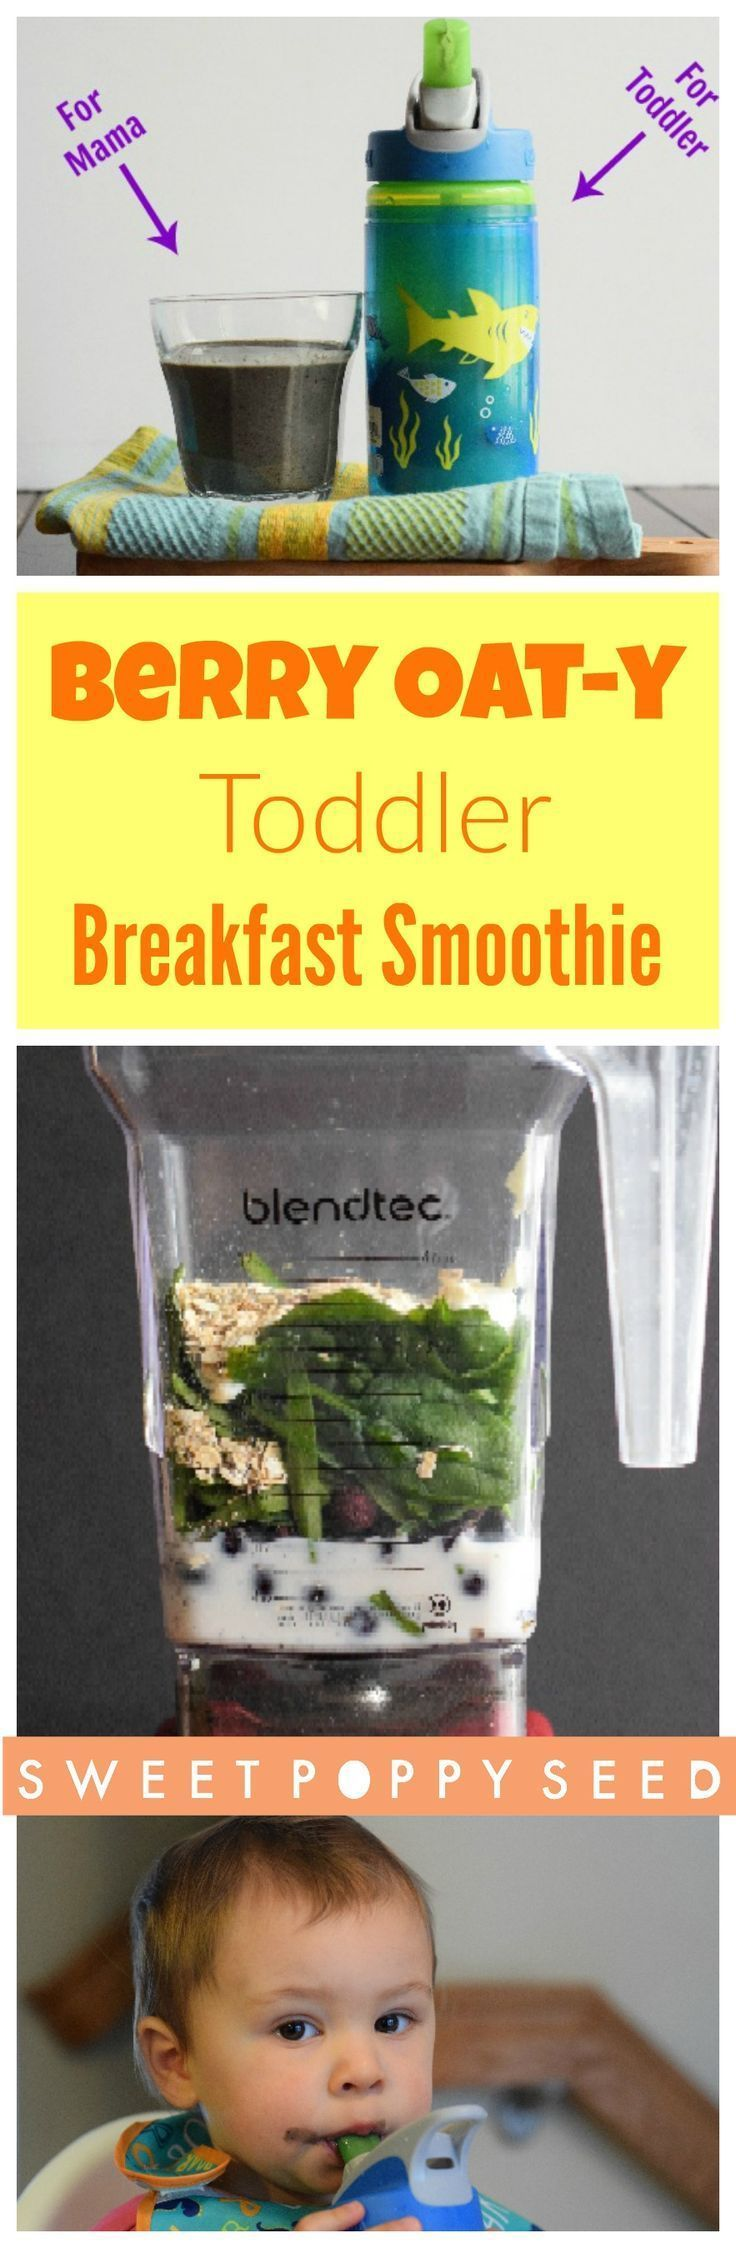 Packed with Spinach, antioxidants, protein, calcium, and fiber! Healthy, delicious and naturally sweetened.